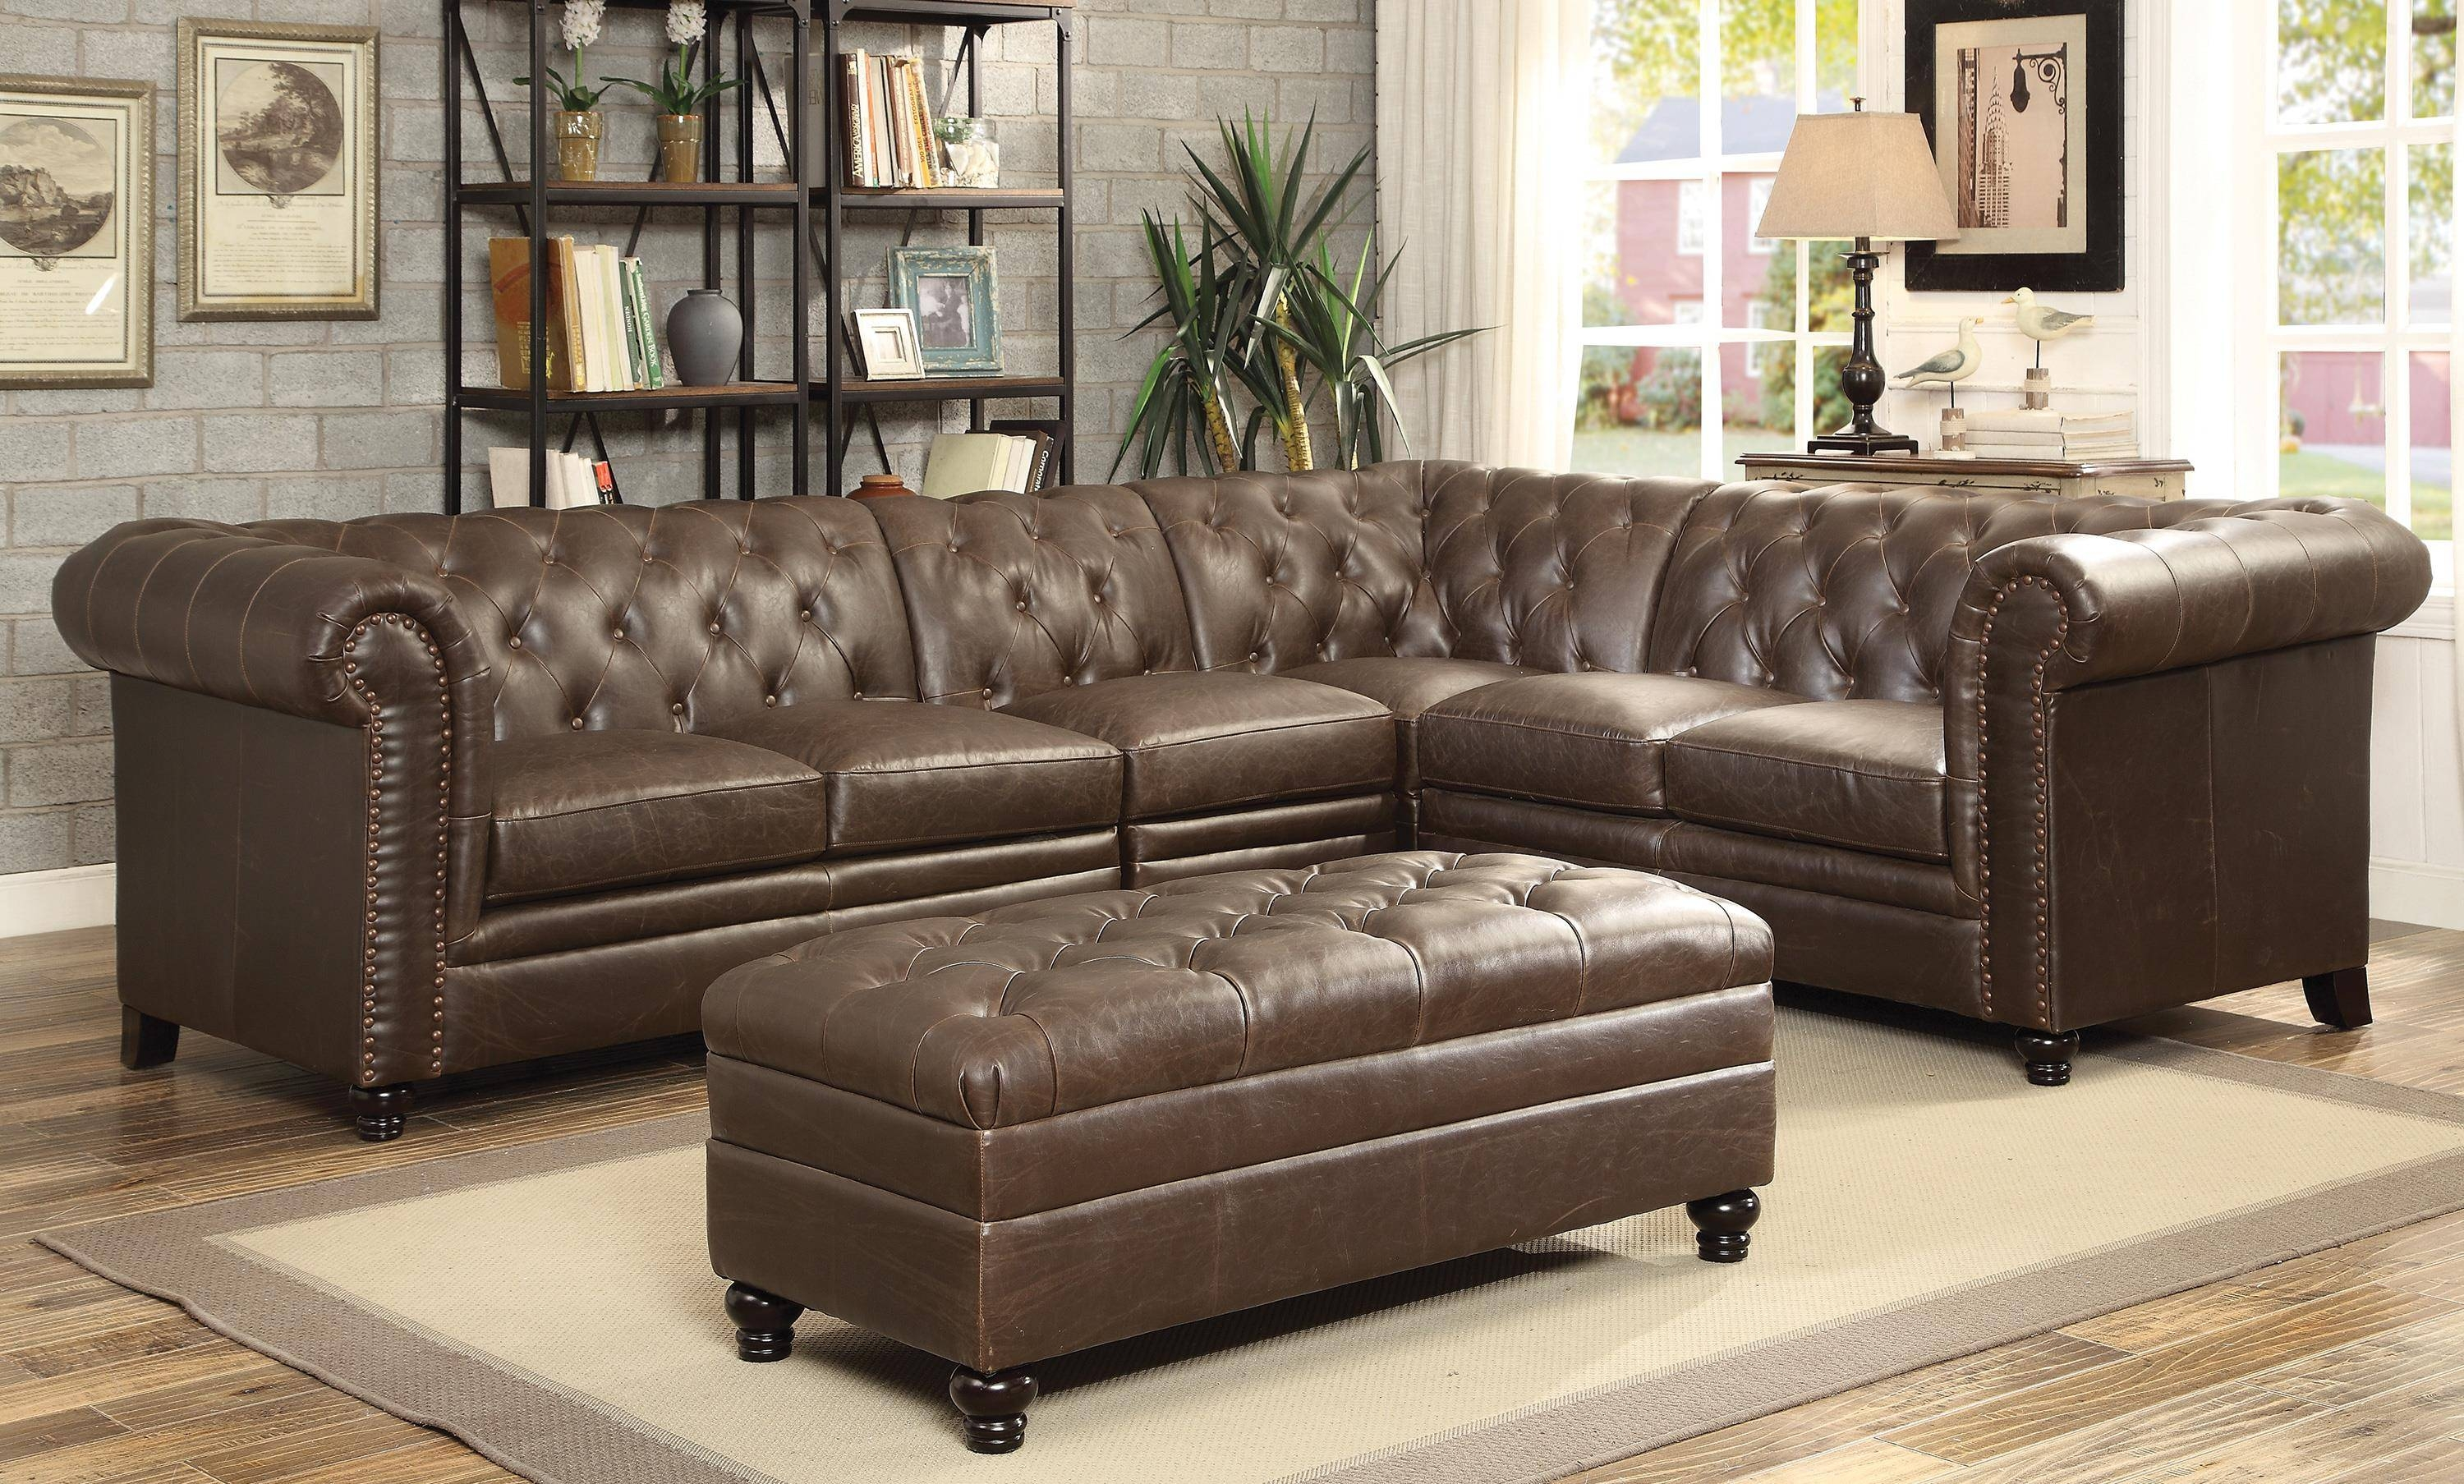 Sofa: Leather Sectional With Chaise | Tufted Sectional Sofa intended for Tufted Sectional Sofa With Chaise (Image 20 of 30)